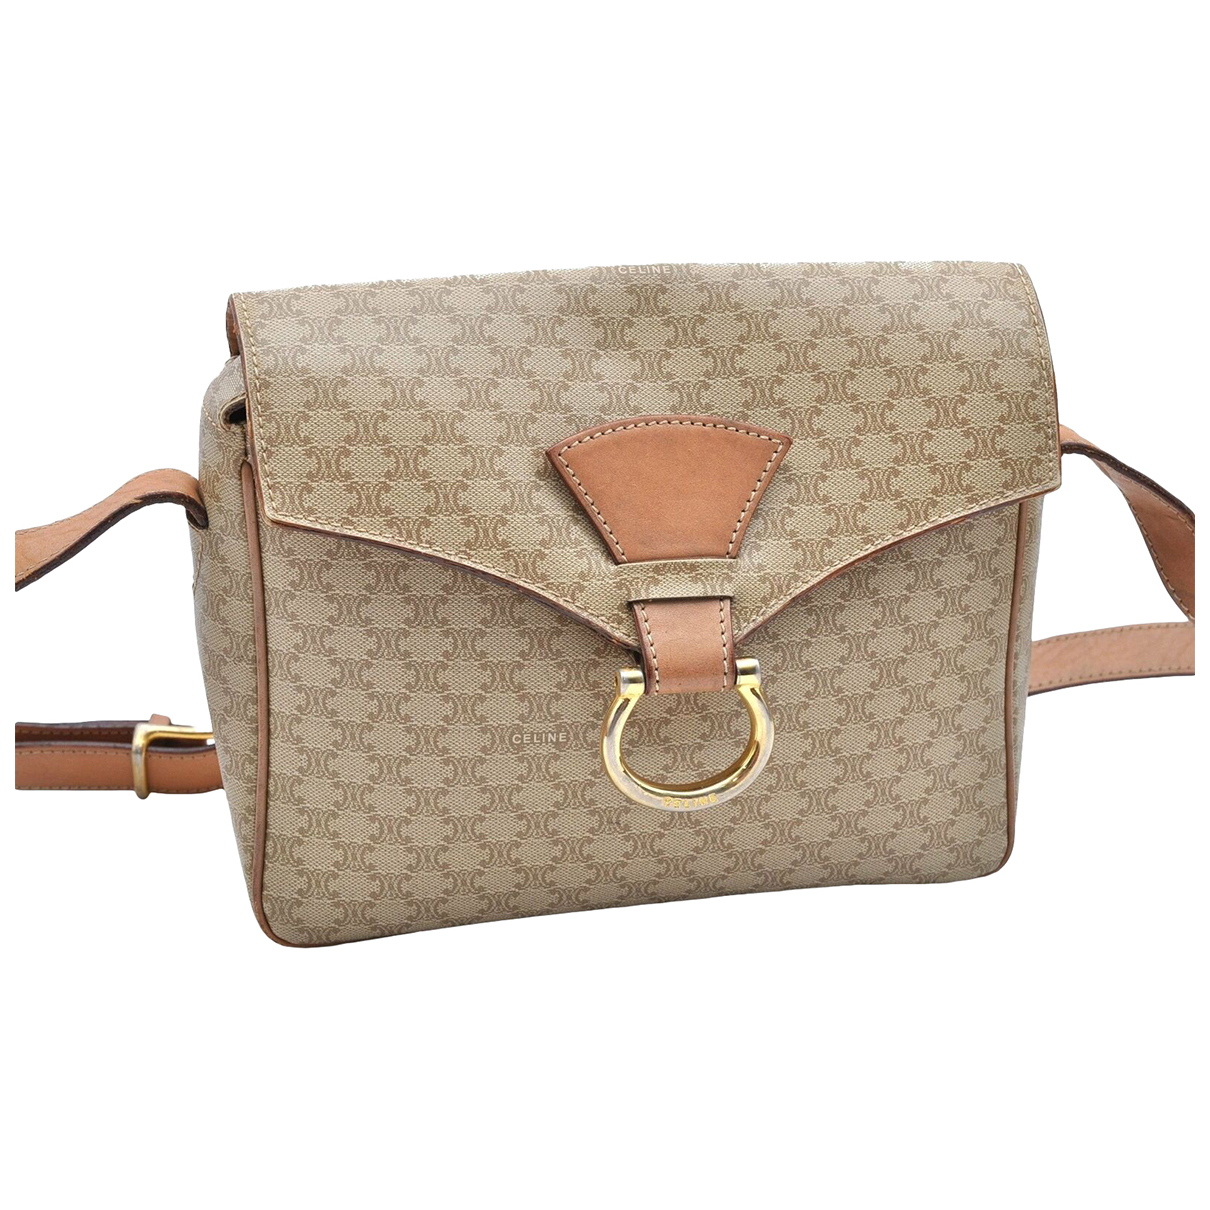 Celine N Beige Leather handbag for Women N